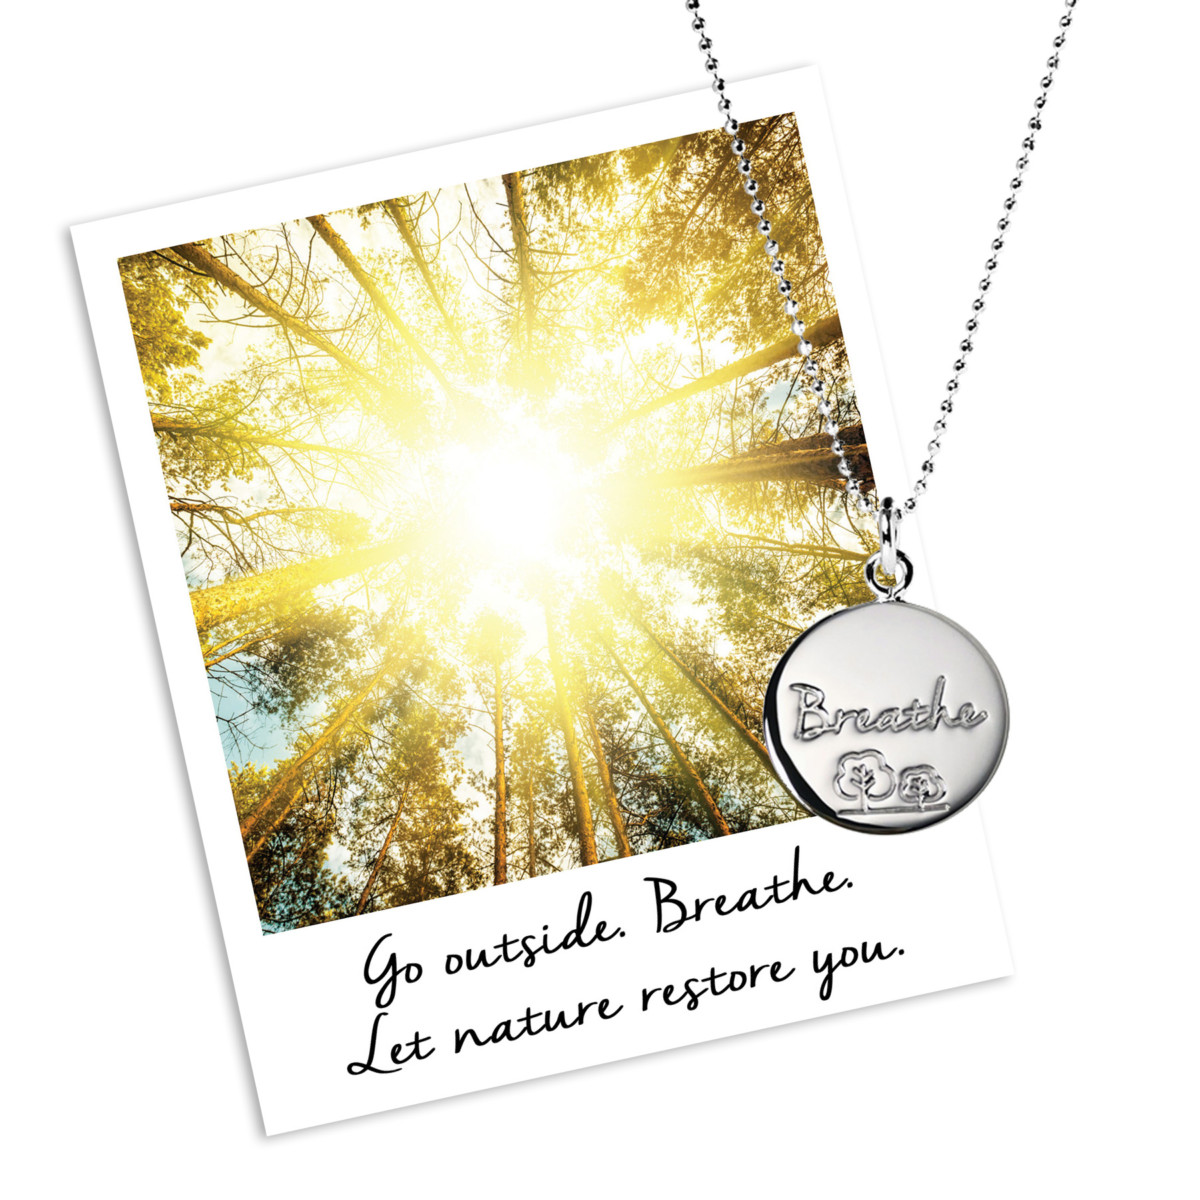 Go outside. Breathe. Let nature restore you, from Mantra Jewellery for Trees for Cities